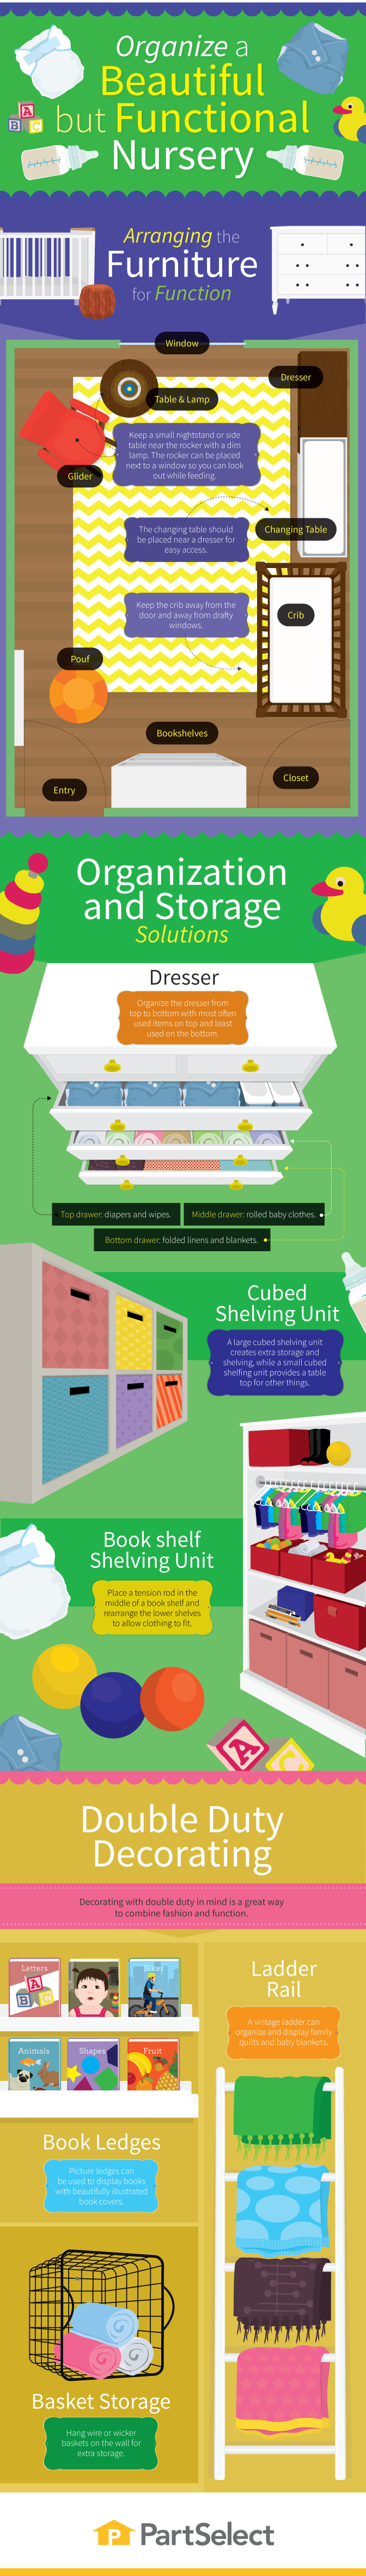 beautiful setting up a functional nursery infographic